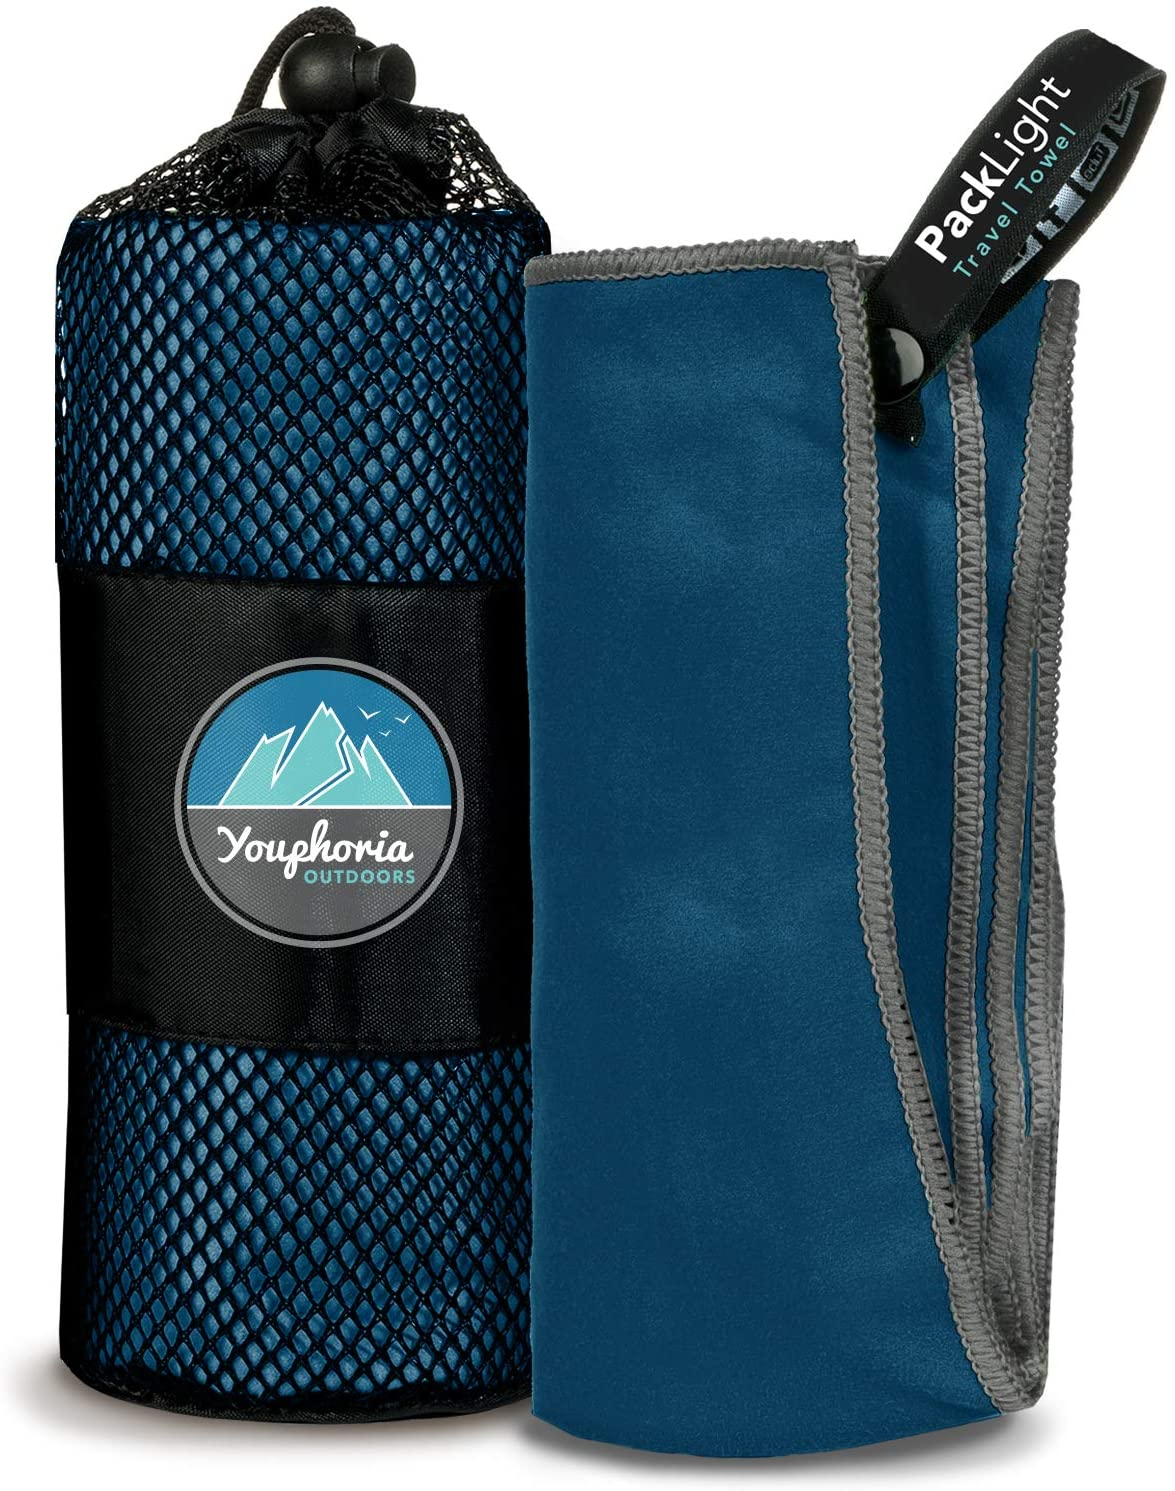 Youphoria Outdoors Microfiber Camping Towel Fast Drying Lightweight